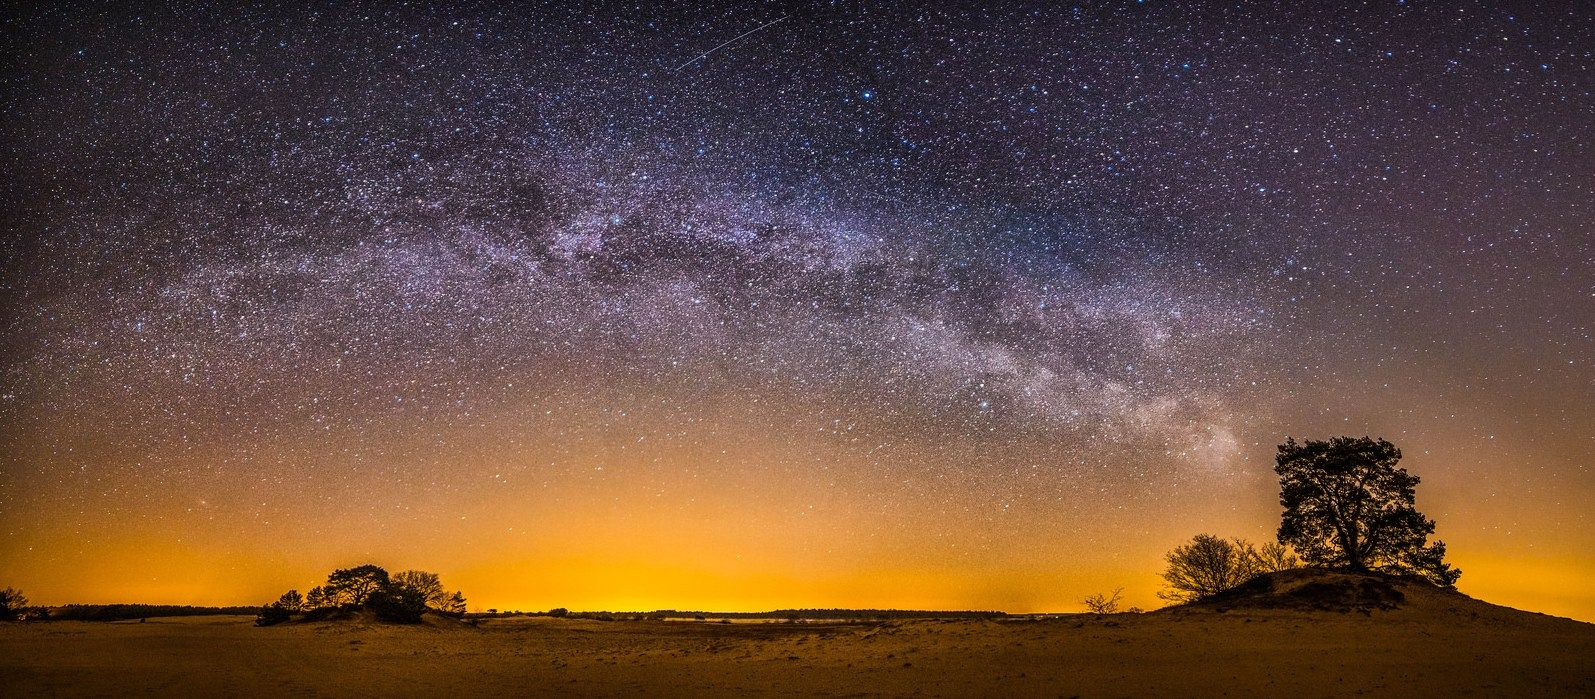 Sinis MilkyWay by Luka180 S. / 500px